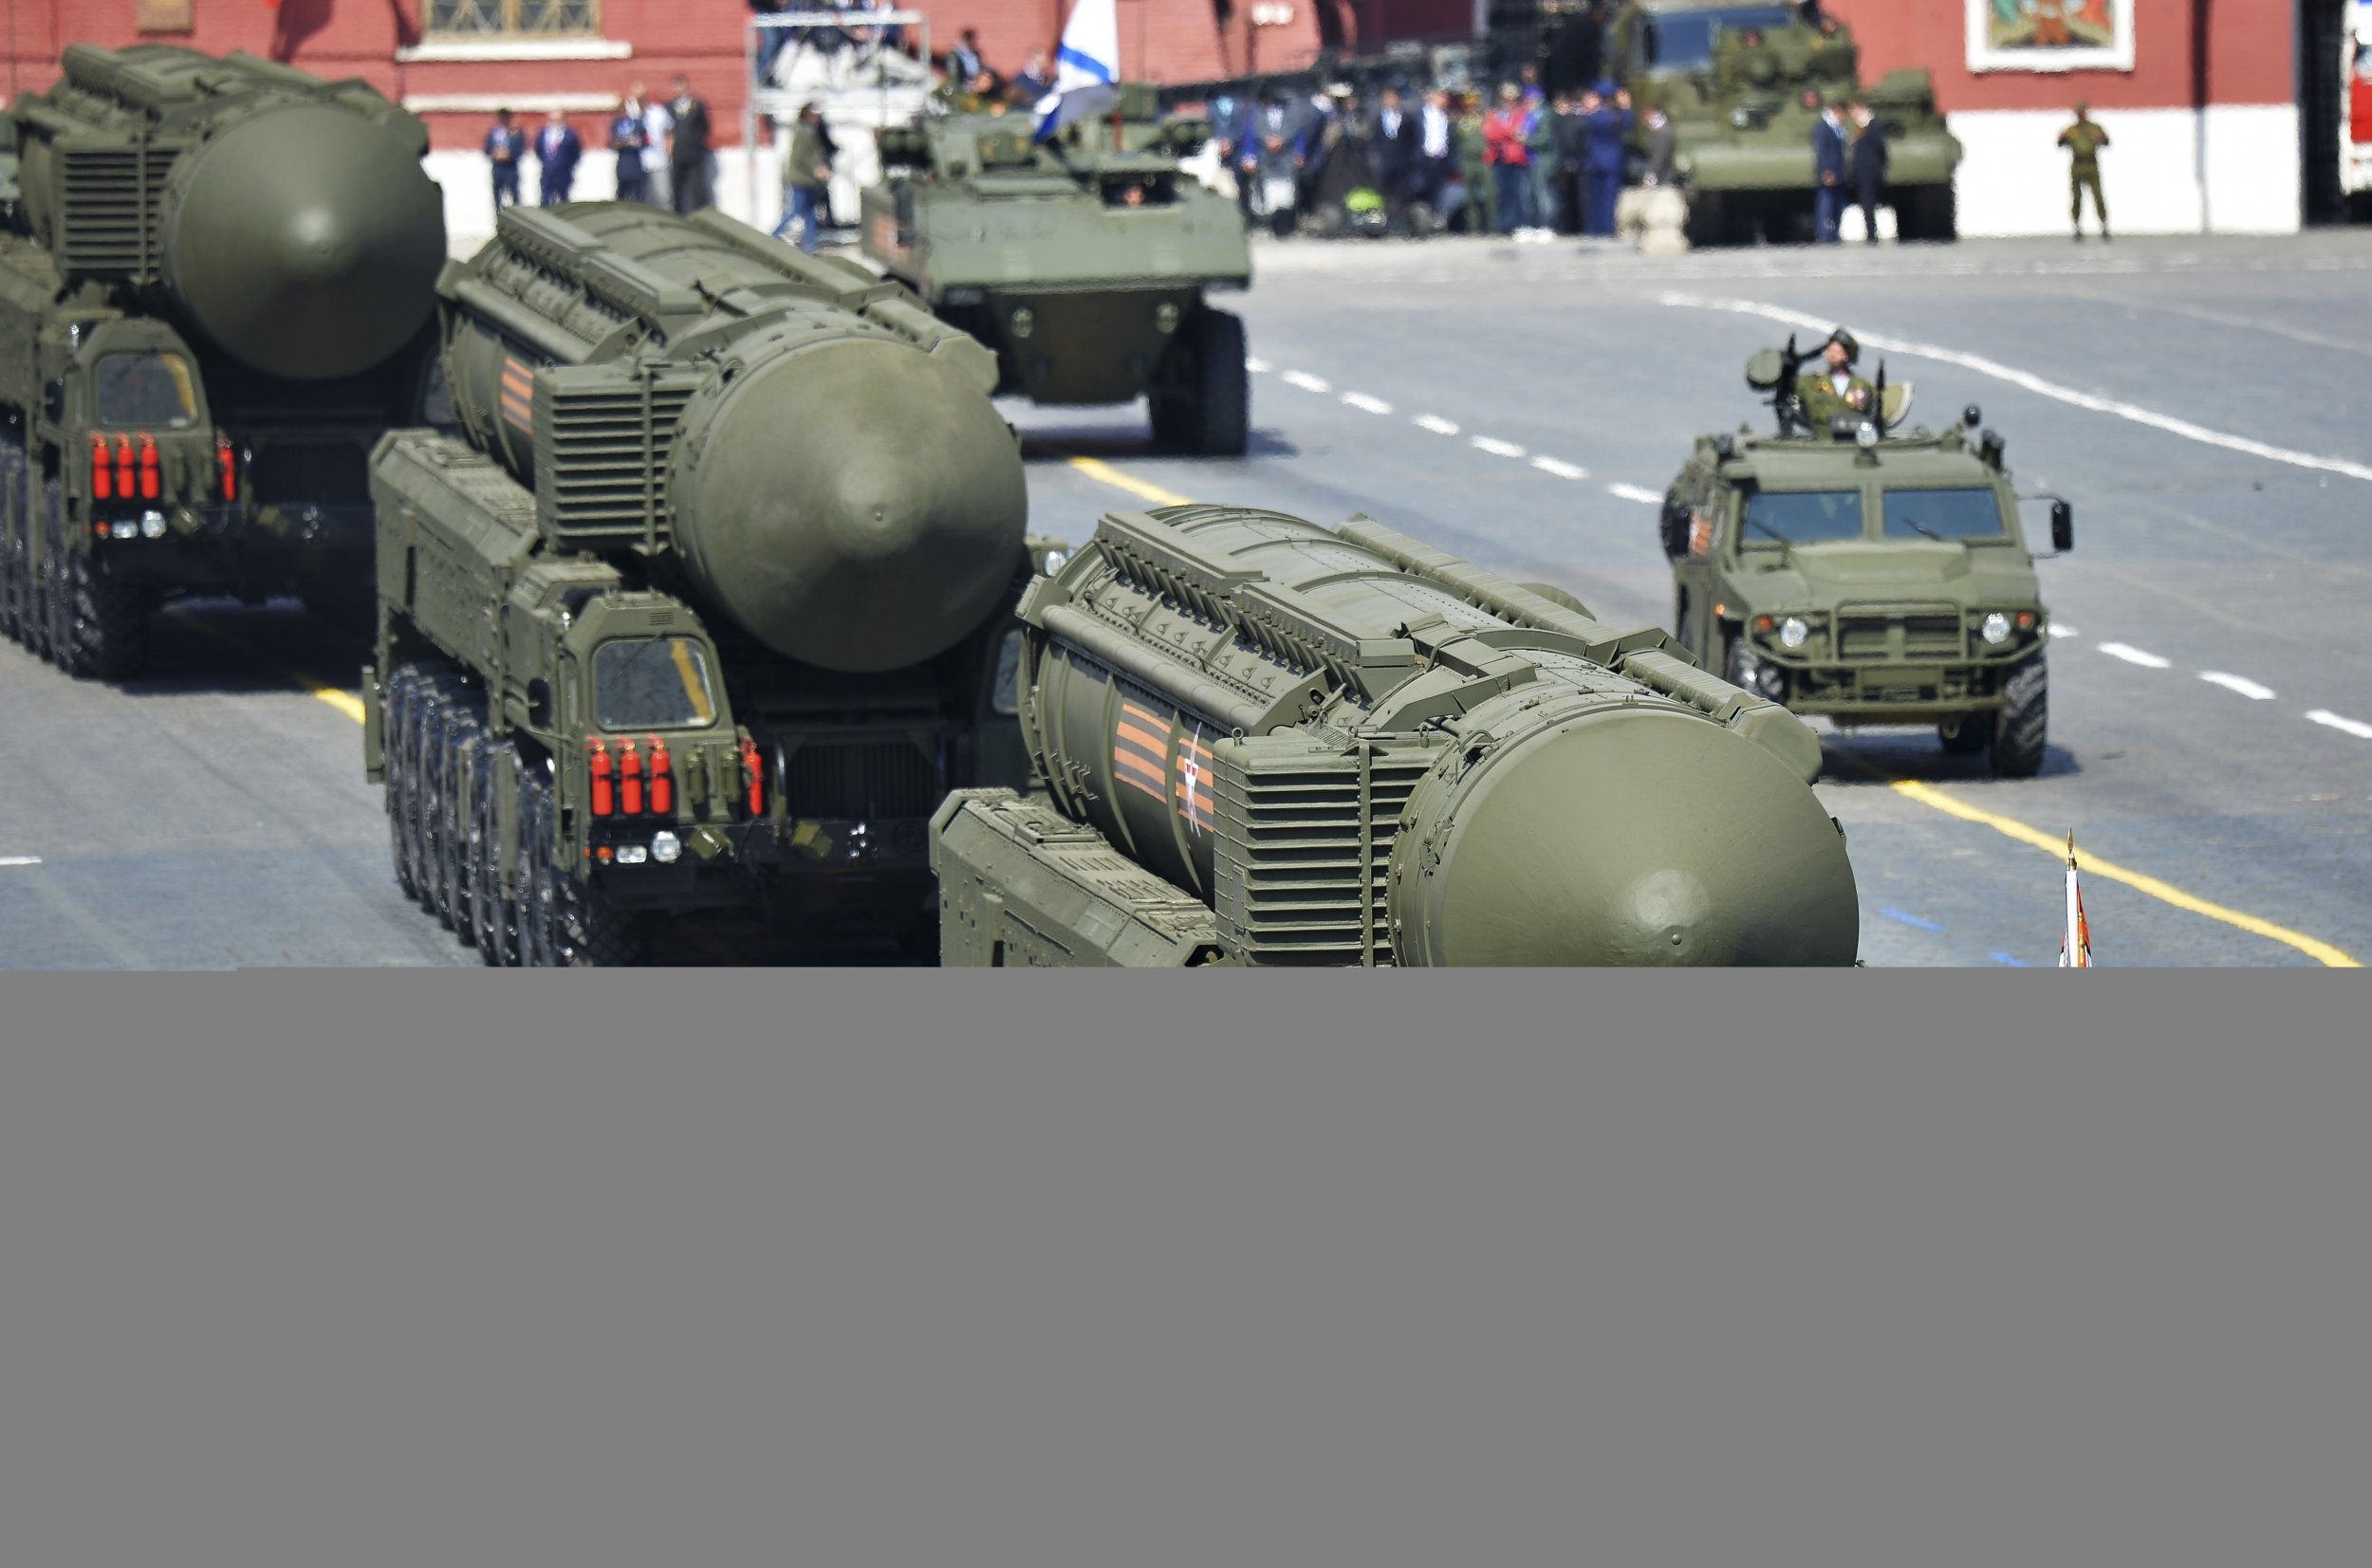 Russia to Deploy New Intercontinental Ballistic Missile Systems and Nuclear Bombers in 2018